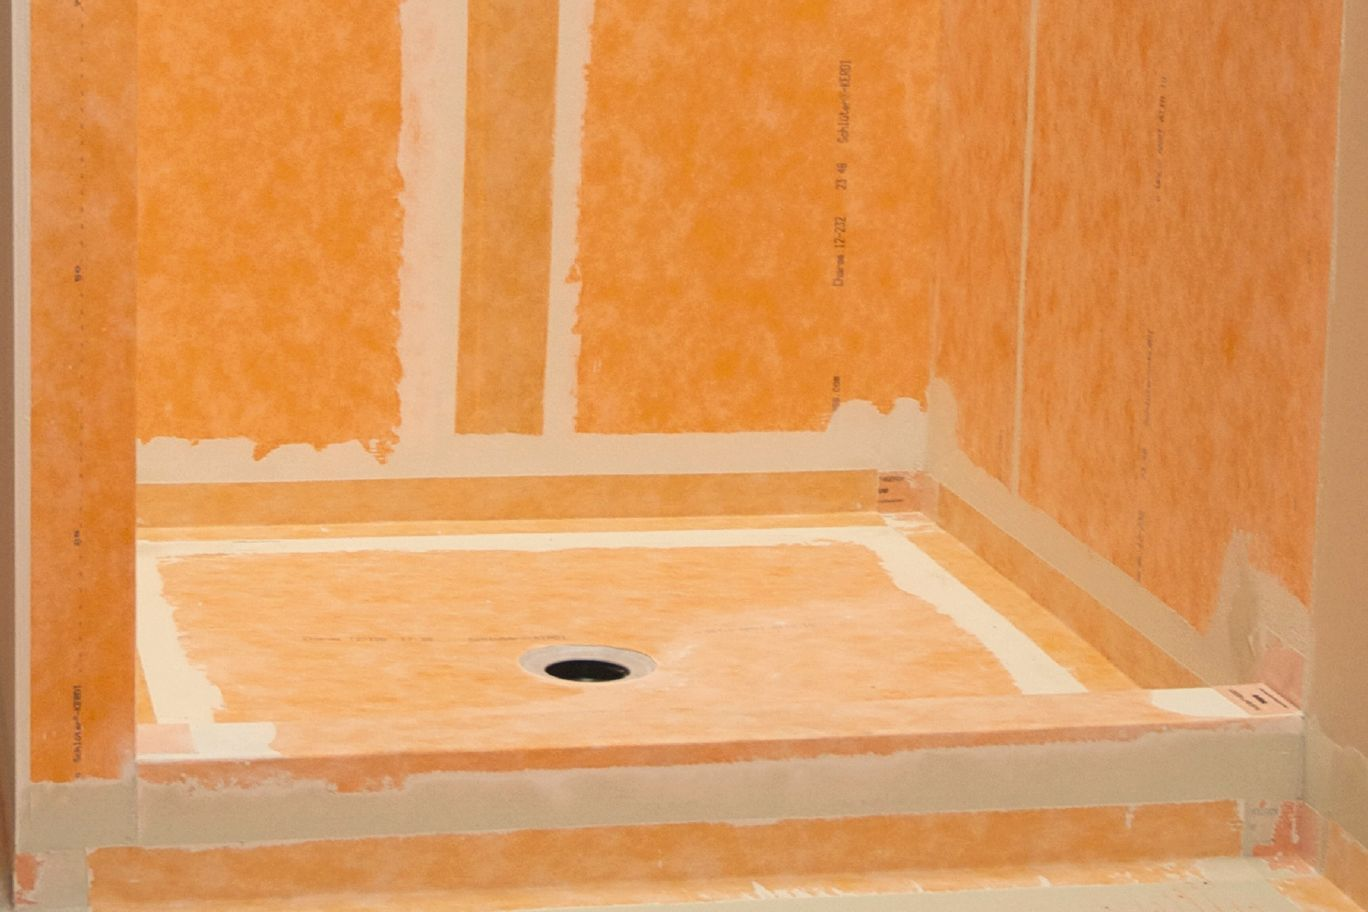 Kerdi Membrane Installation Made Simple Video Shower Tile Shower Wall Shower Systems